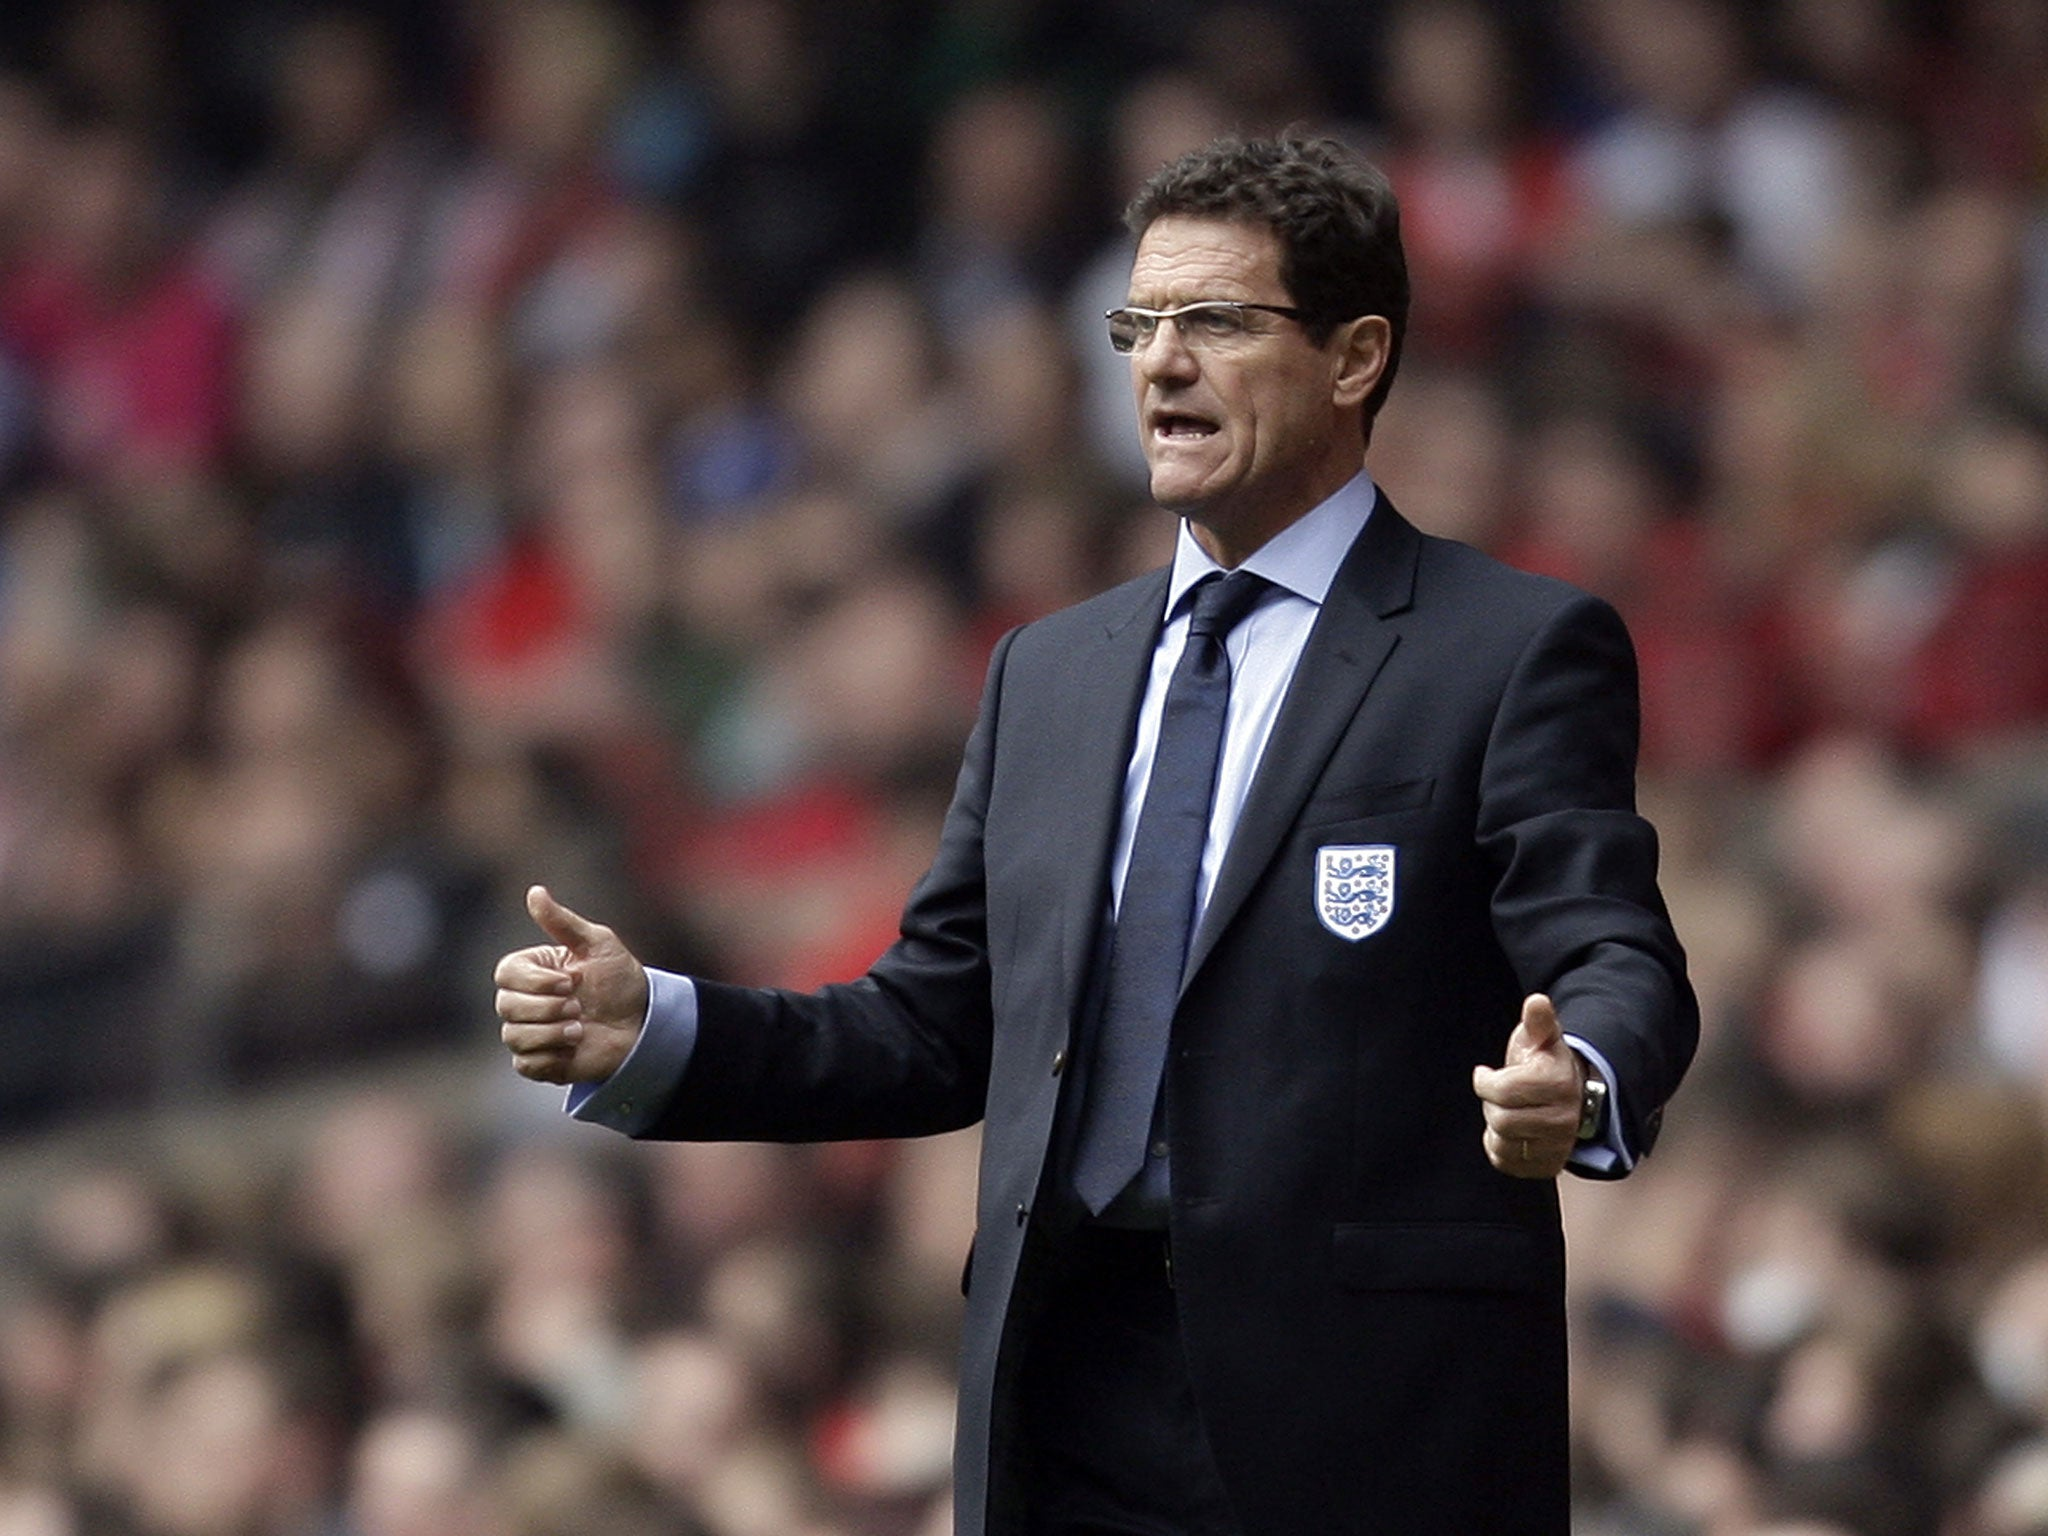 Fabio Capello admitted mistakes at the World Cup, but did not take the blame for the failure 48